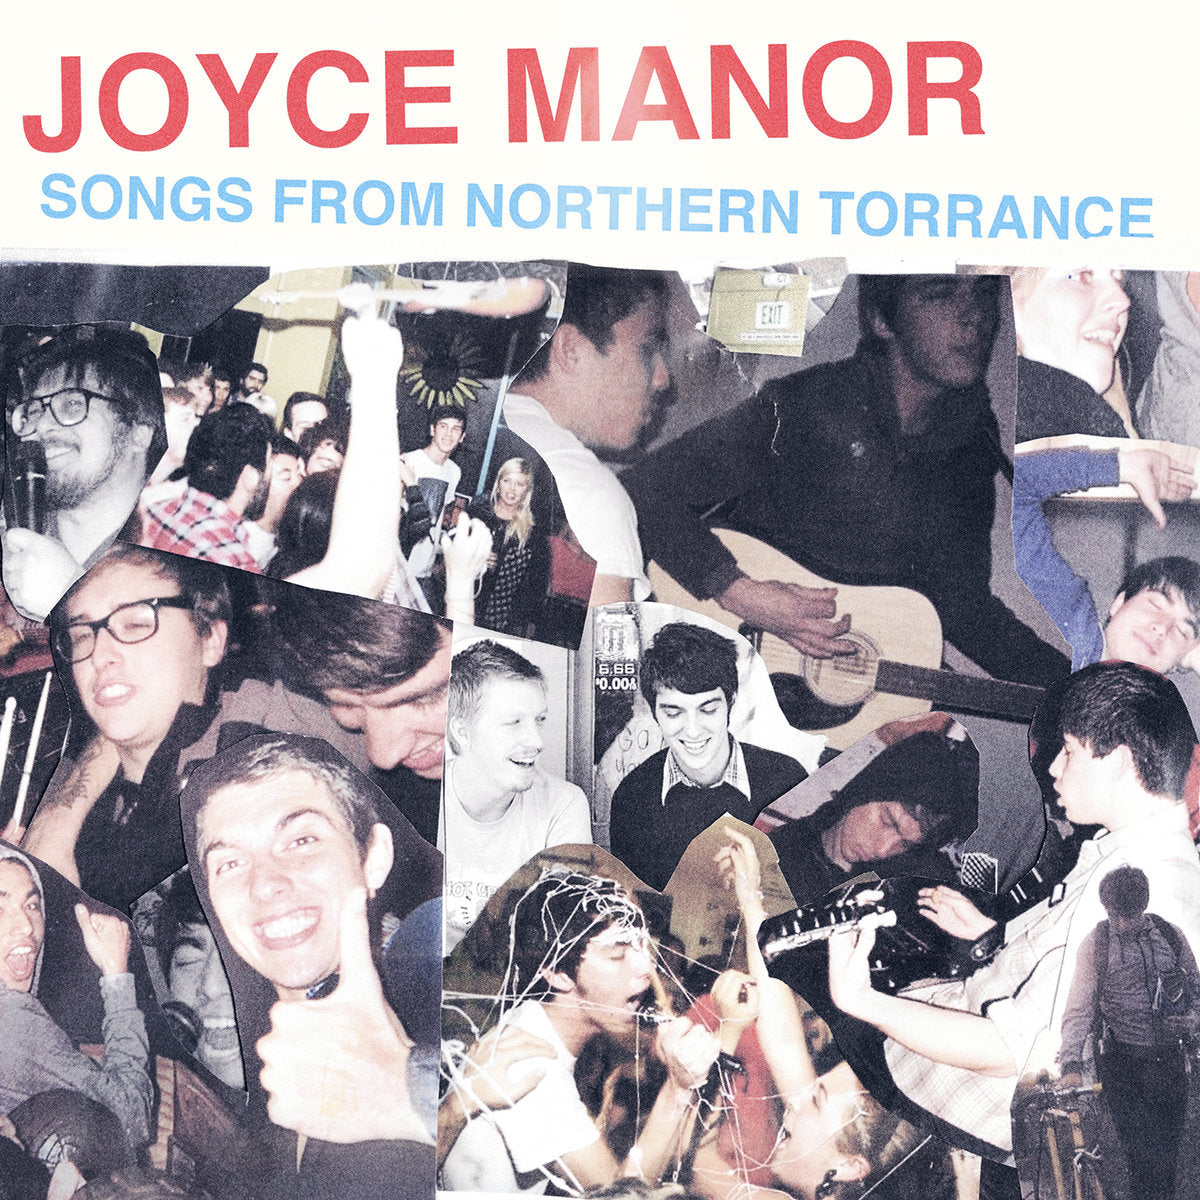 Joyce Manor - Songs From Northern Torrance LP - Vinyl